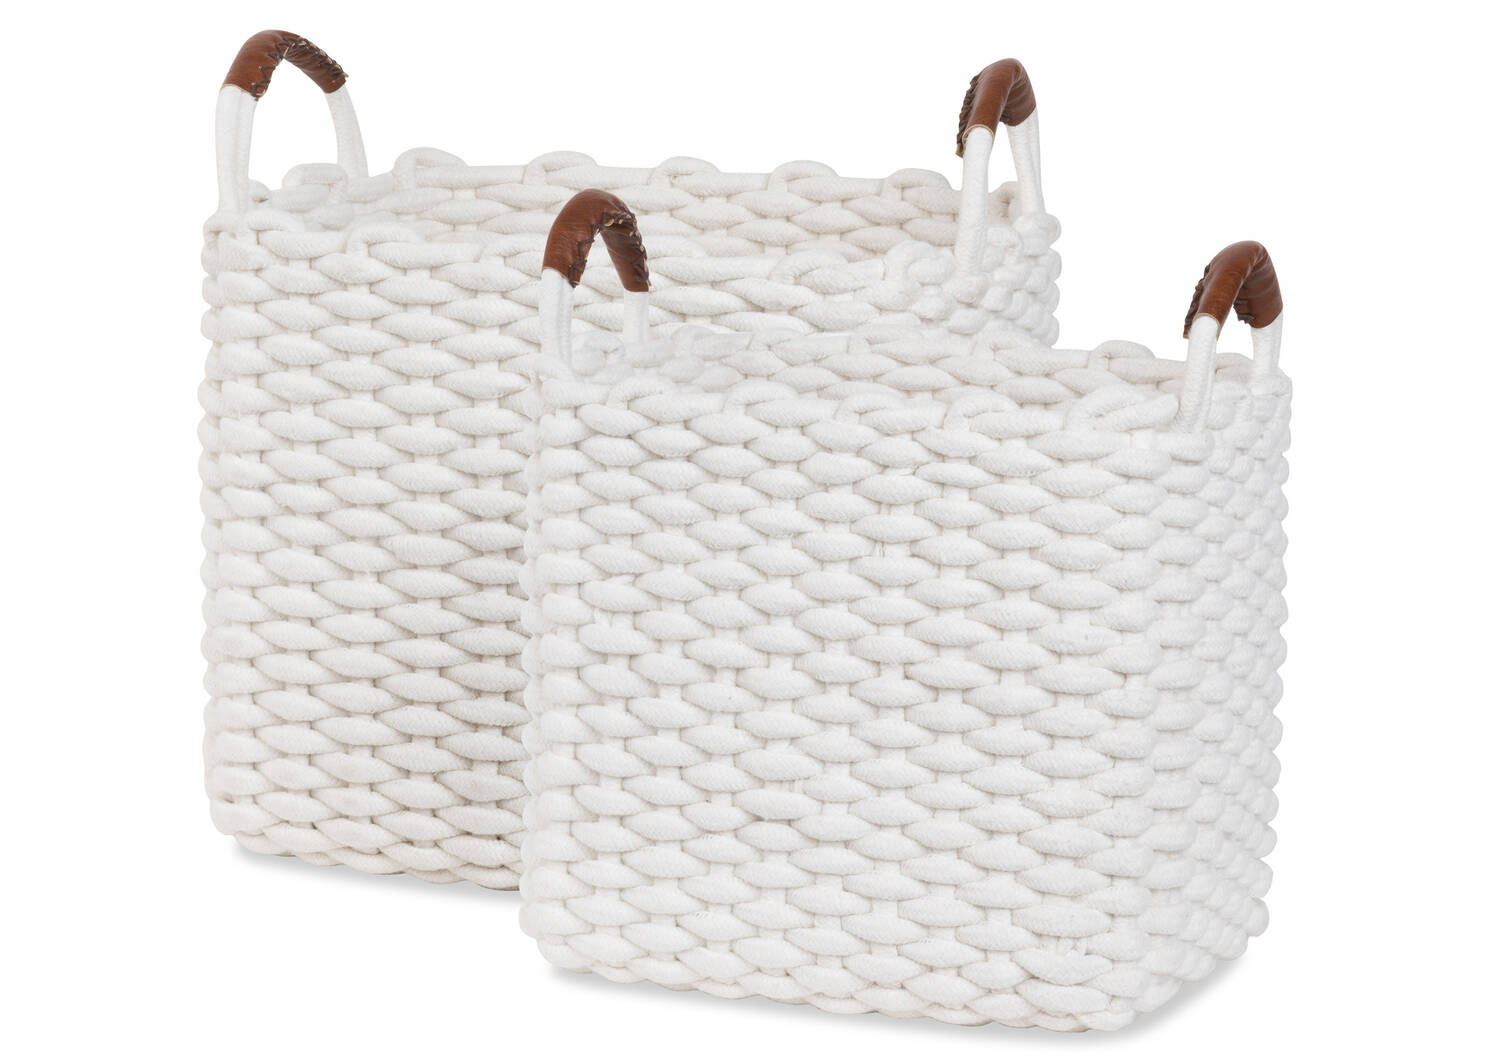 Corde Baskets - Natural